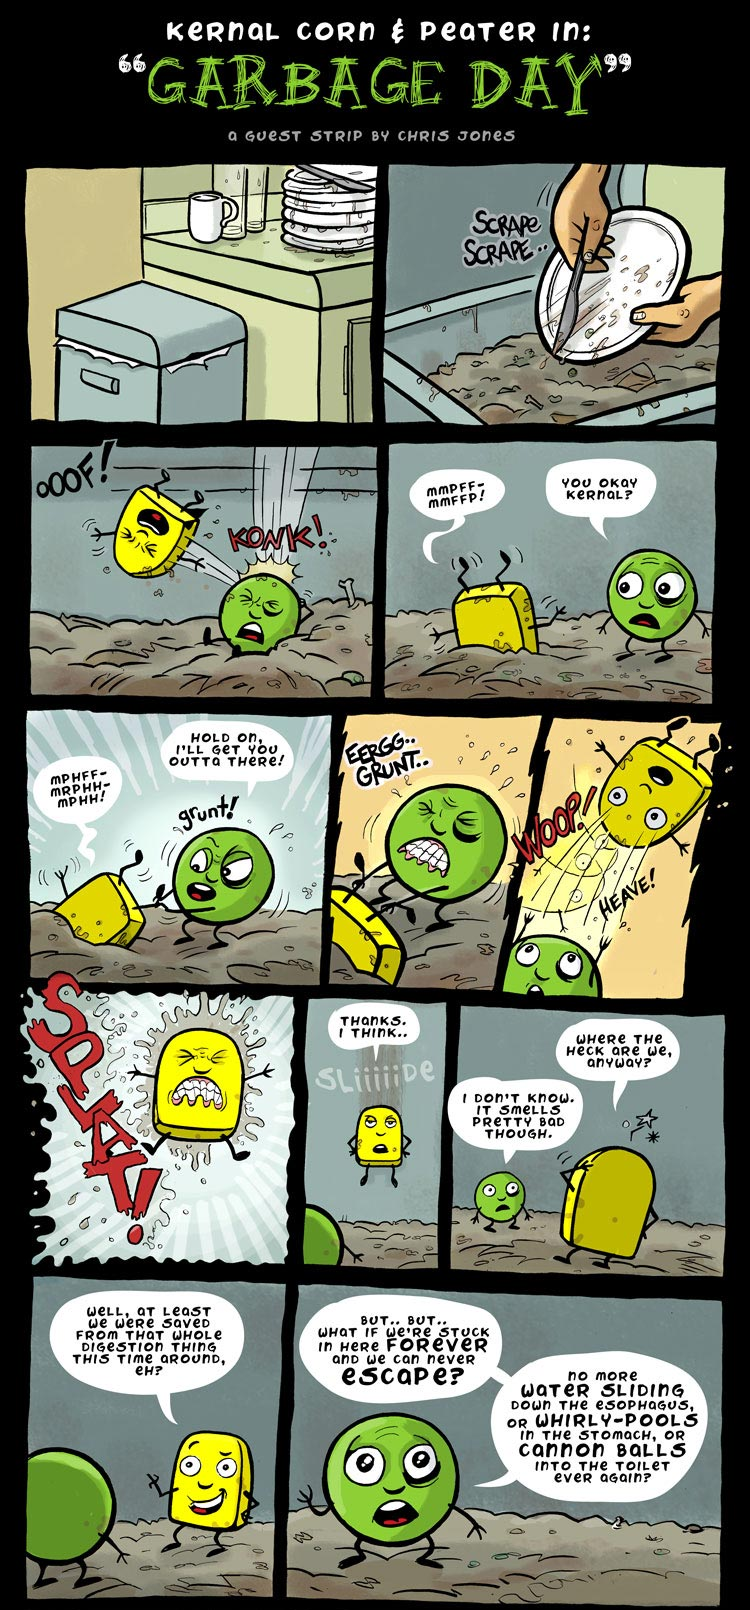 Chris Jones Guest Kernel Corn Comic! 1 of 2